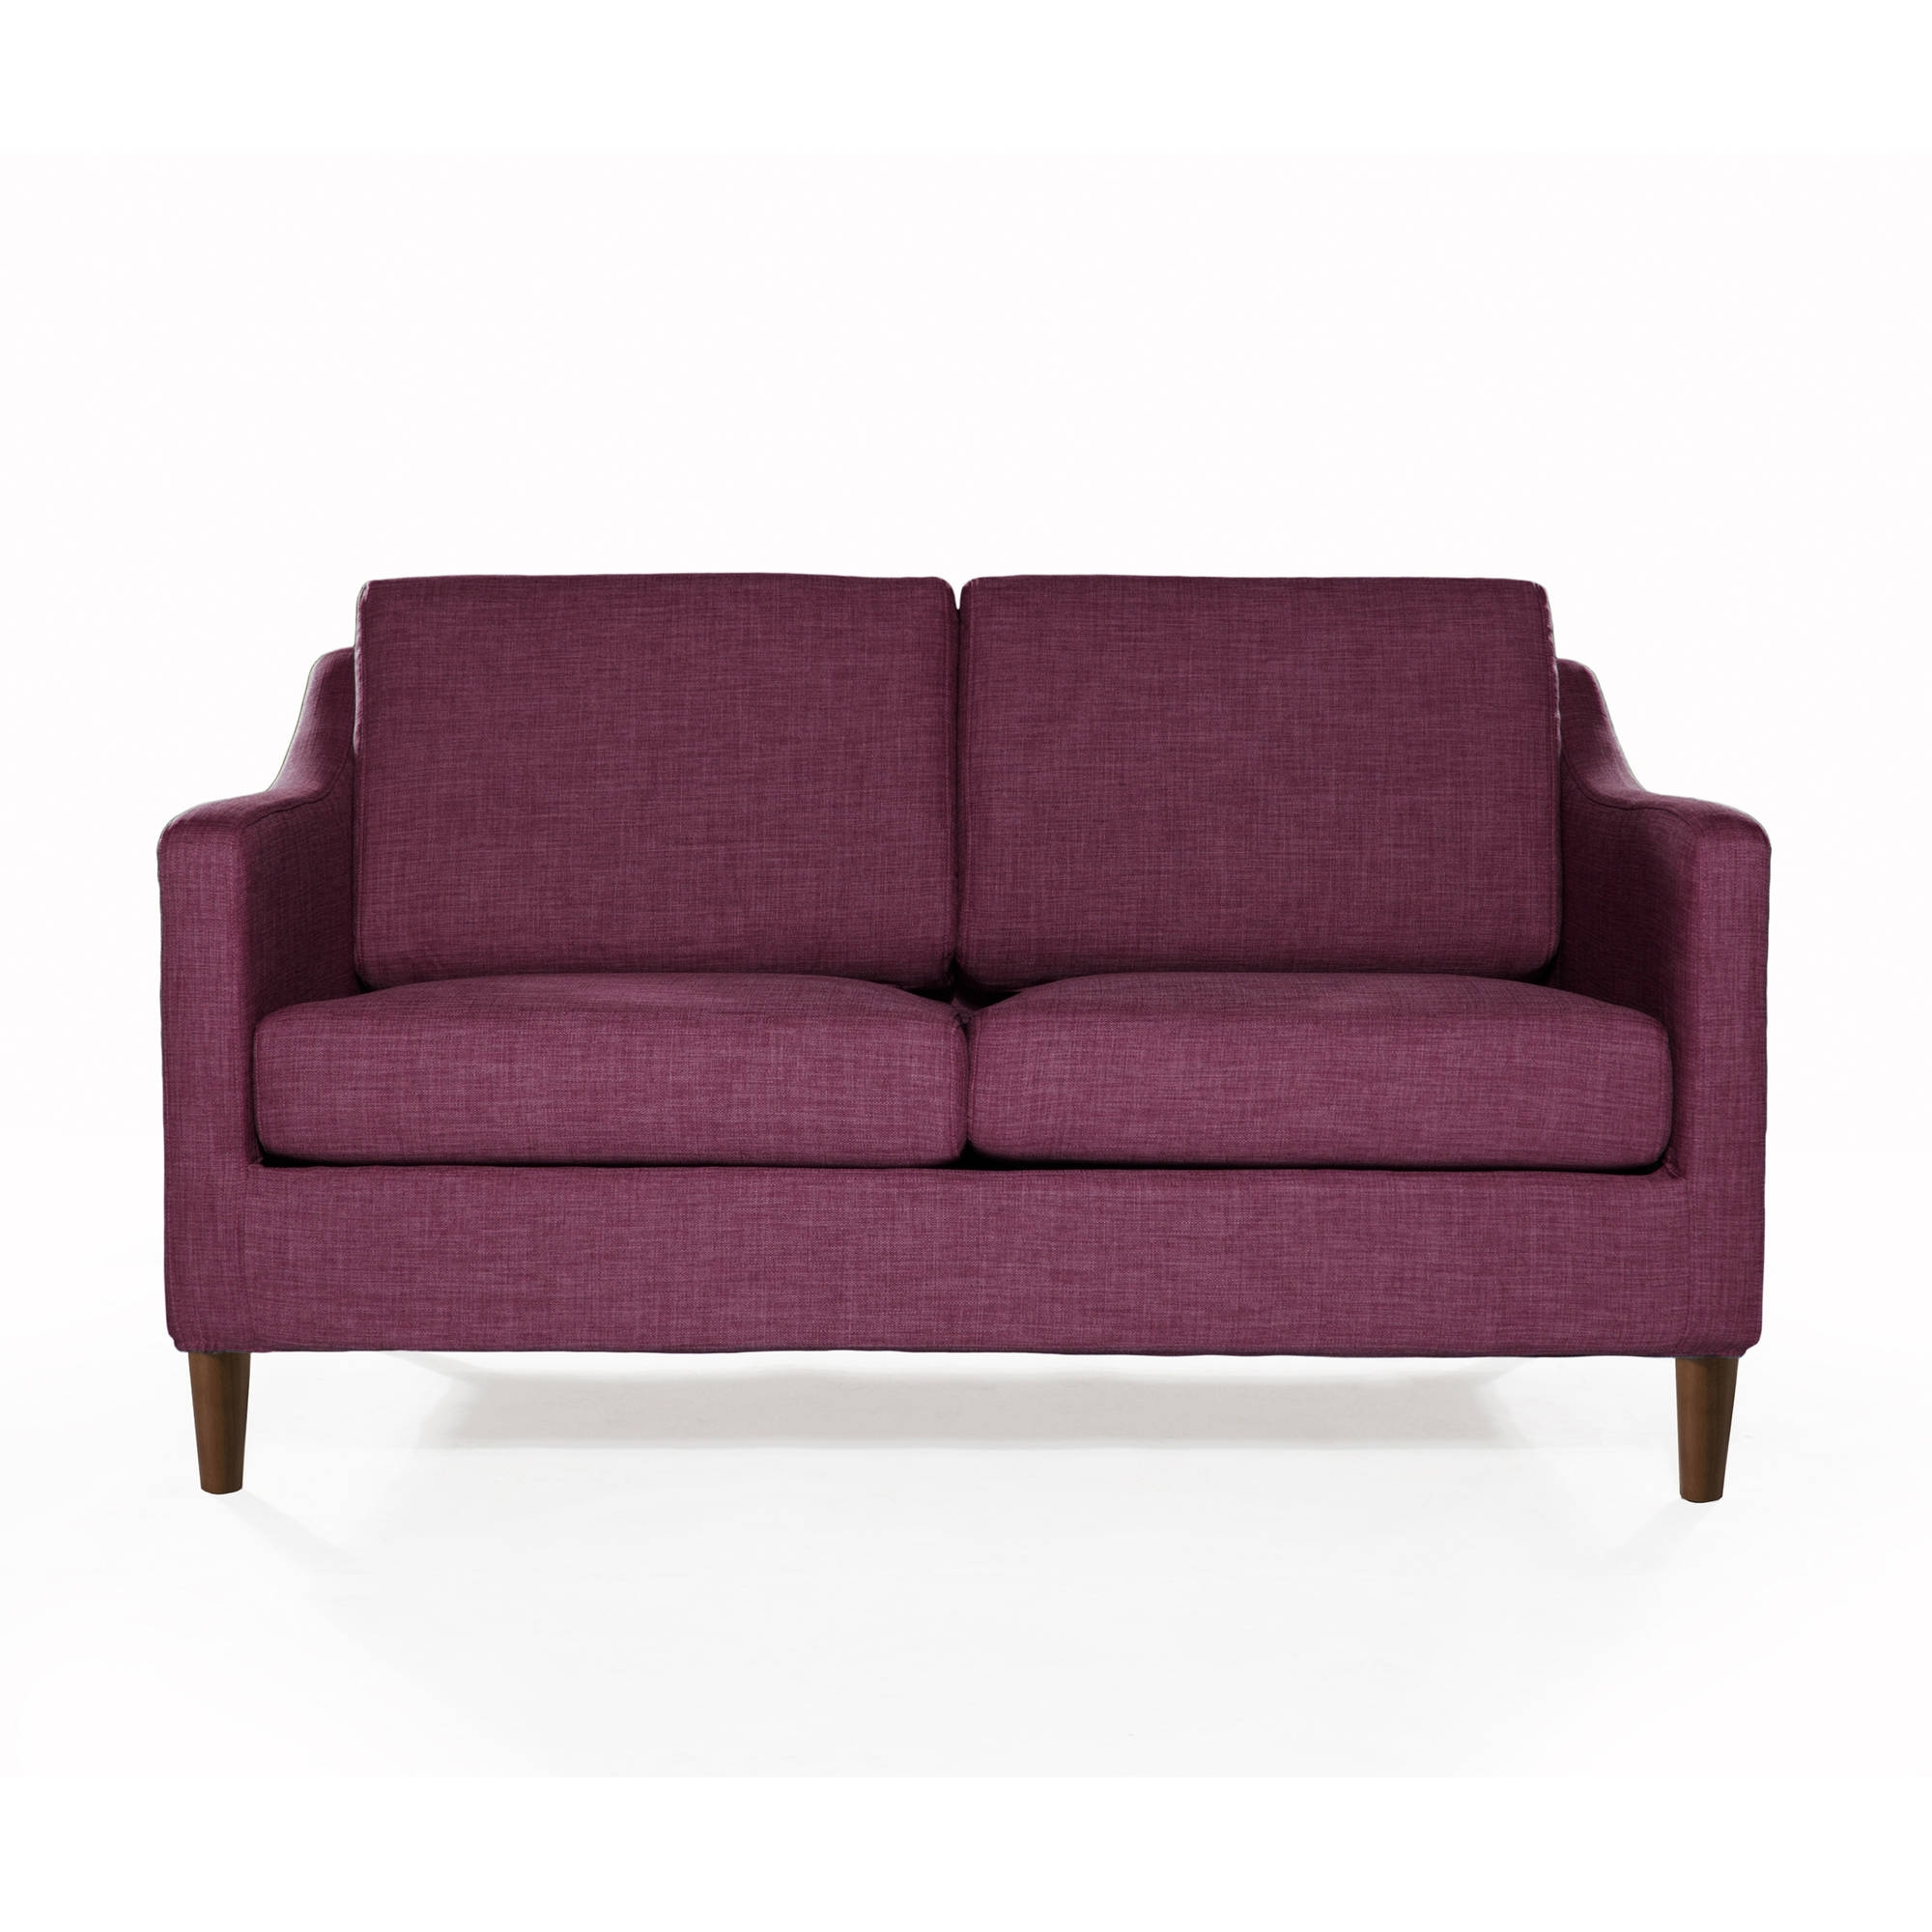 Sectional Sofas Under 600 Intended For Preferred Sectional Sofas – Walmart (View 12 of 15)